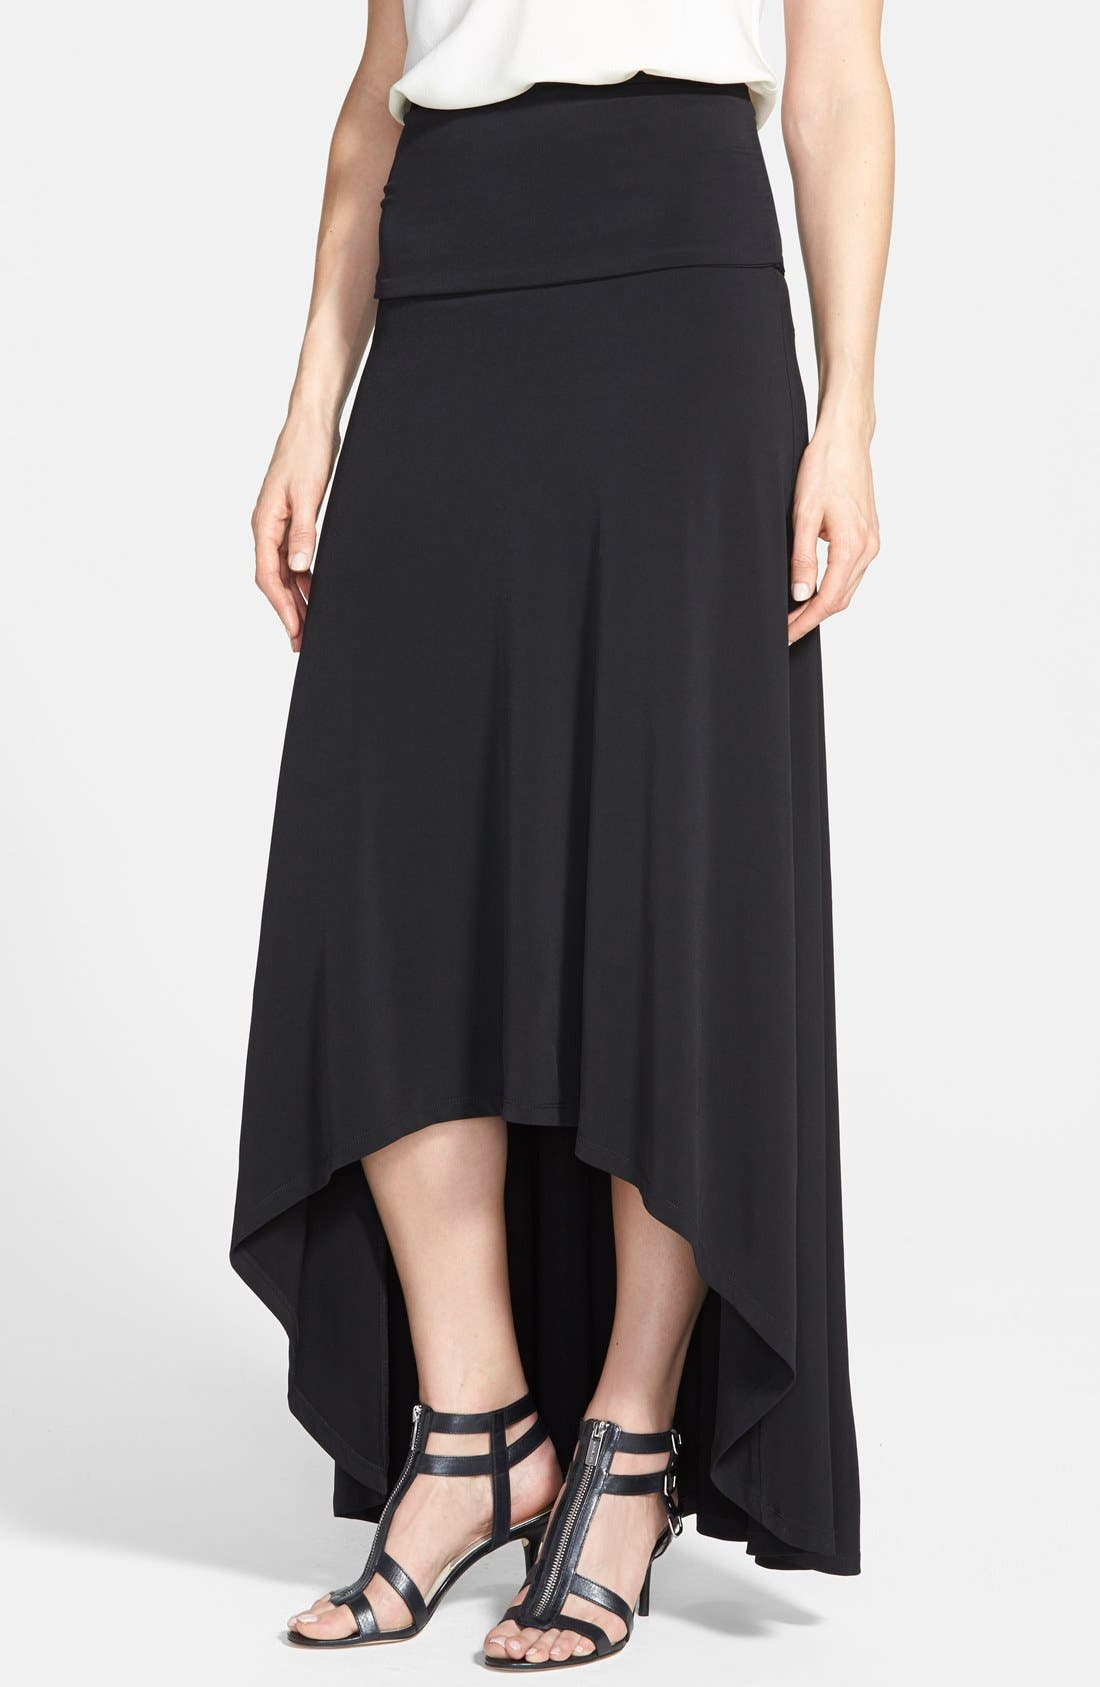 Alternate Image 1 Selected - MICHAEL Michael Kors High/Low Maxi Skirt (Regular & Petite)